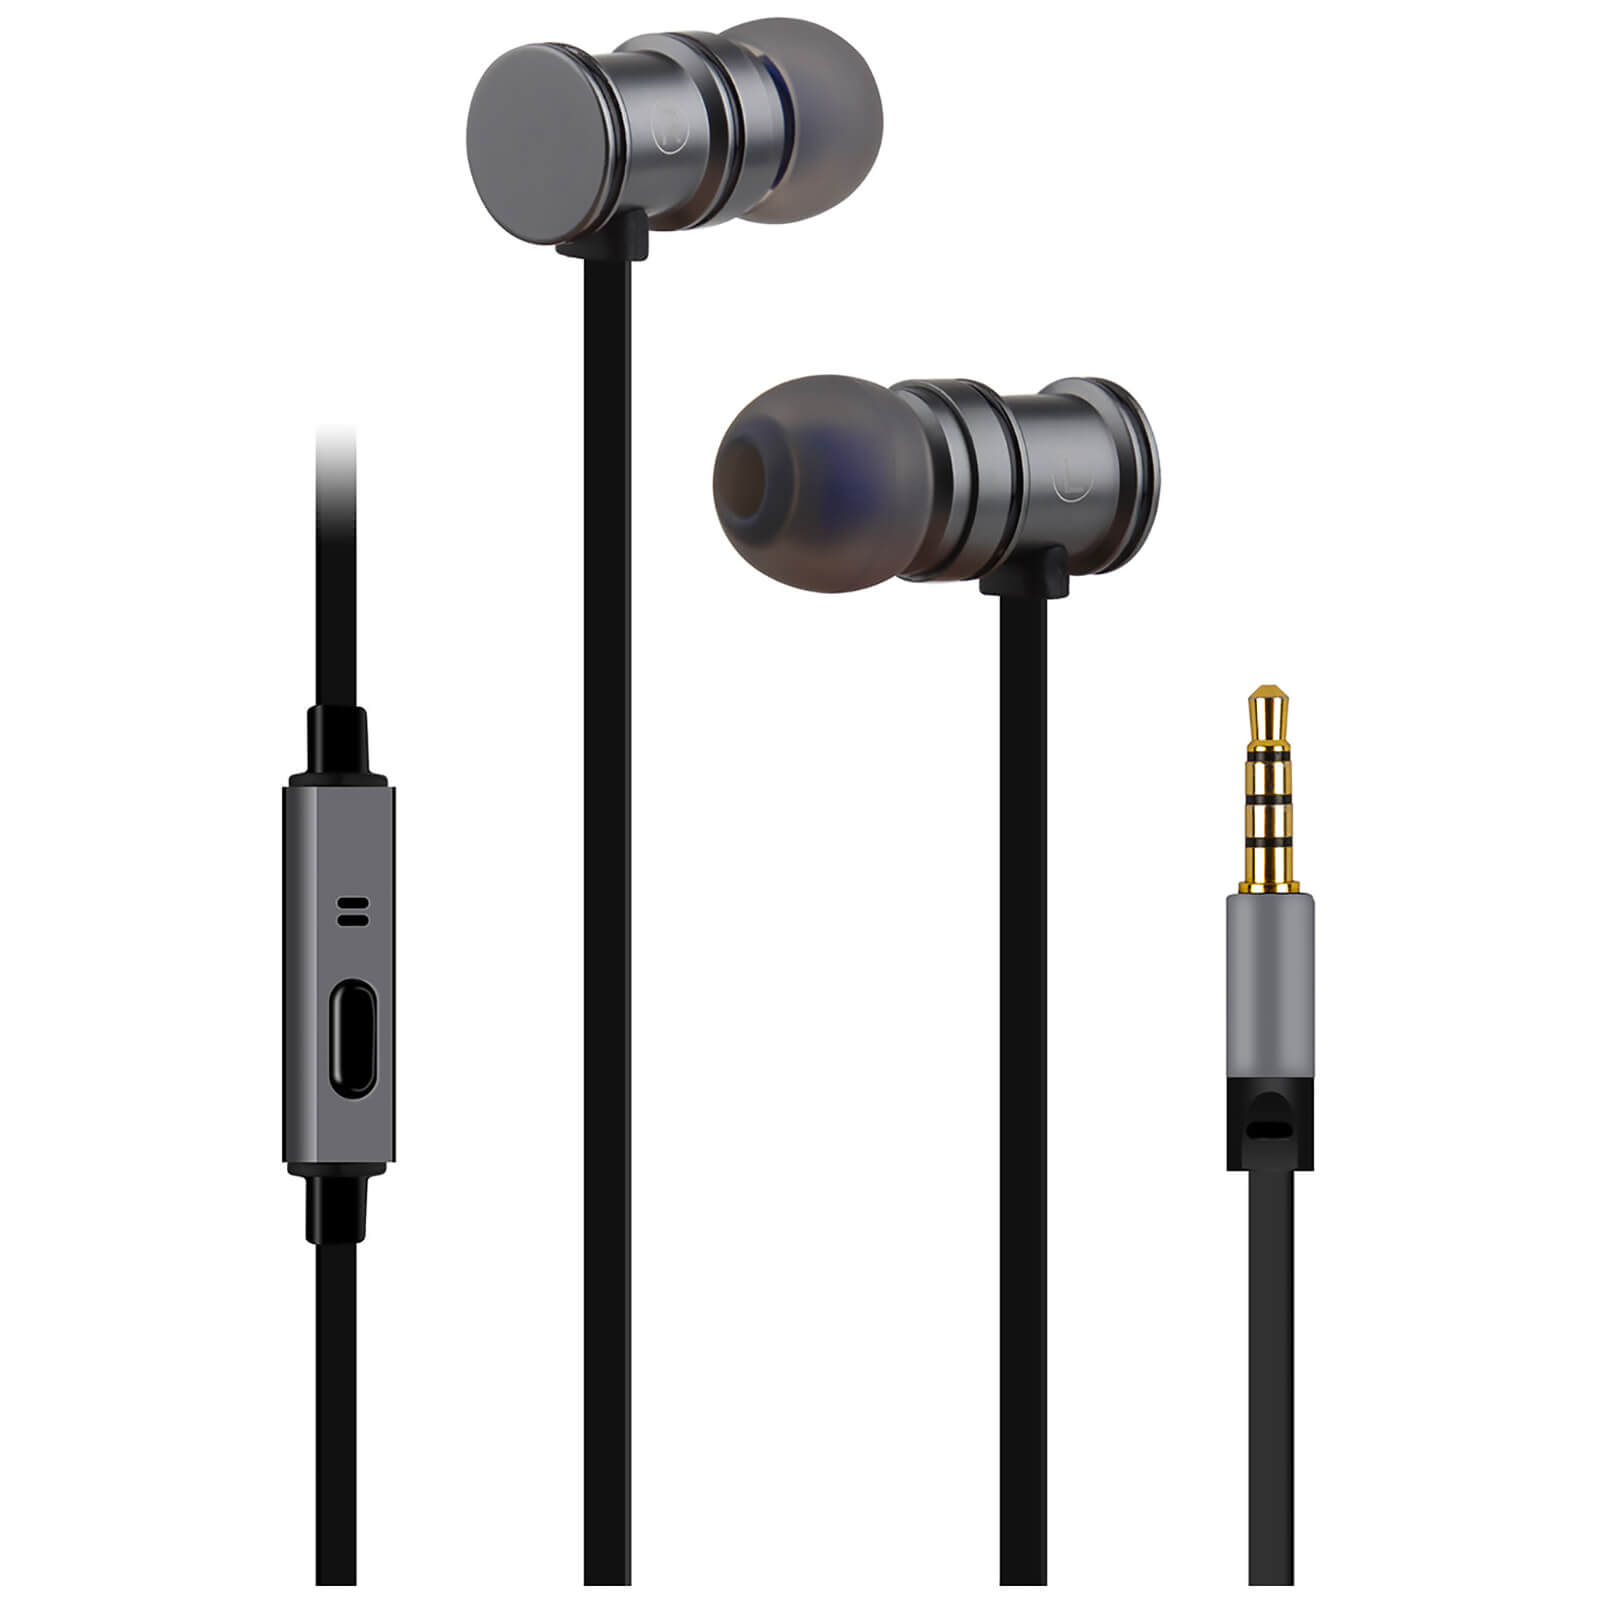 f16684f10bc AV: Link Metallic Magnetic Stereo Noise Cancelling Earphones with Tangle  Free Cable - Metallic Grey | IWOOT